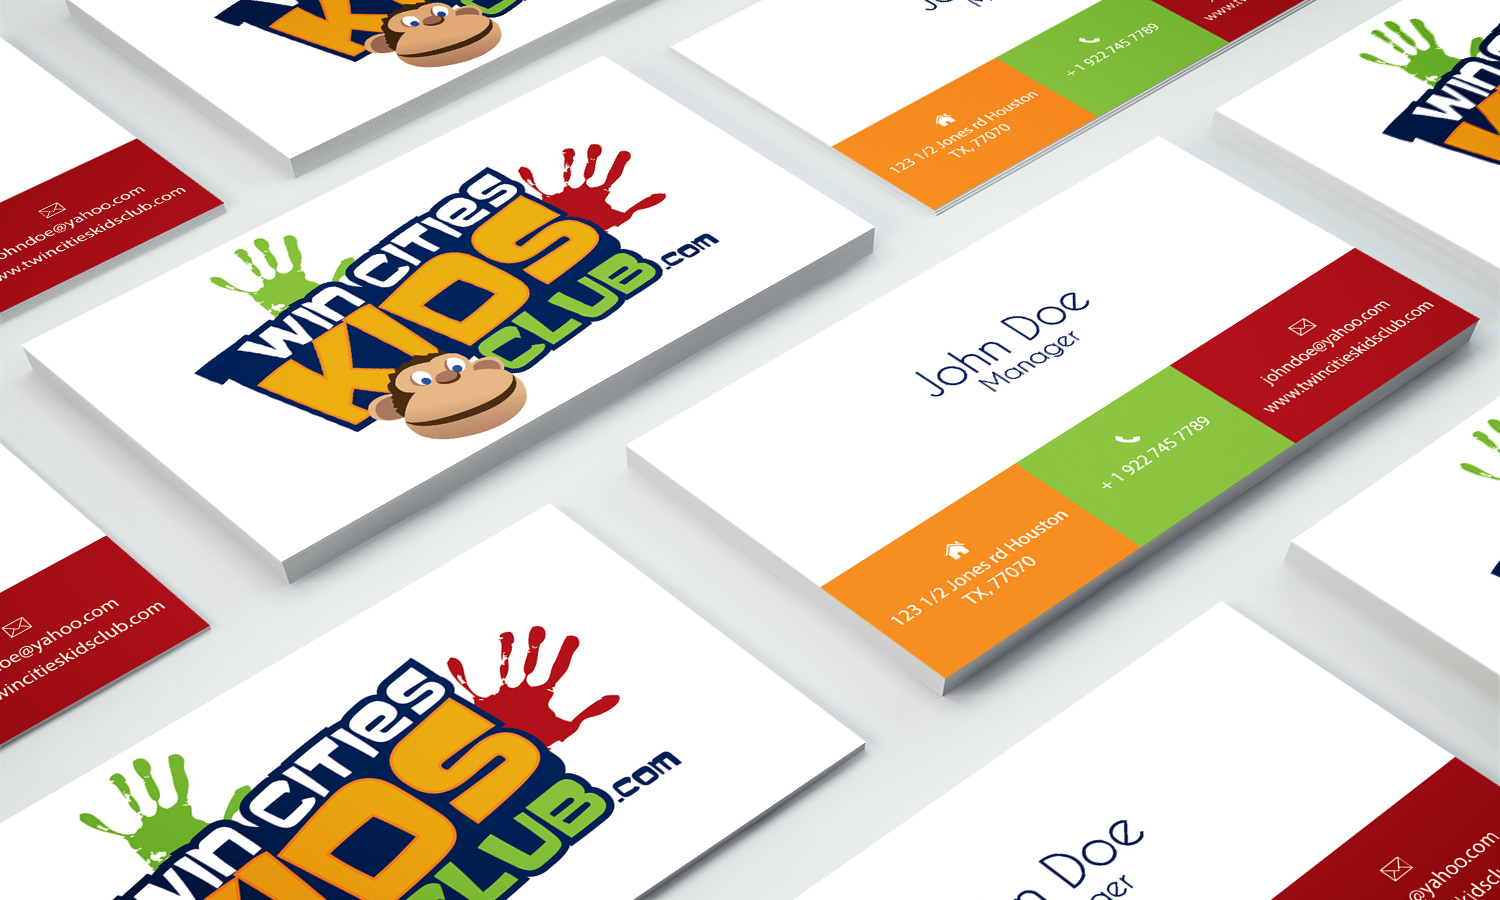 Business Card Design By Stylez Designz For Twin Cities Kids Club Business  Card Project   Design  Club Card Design